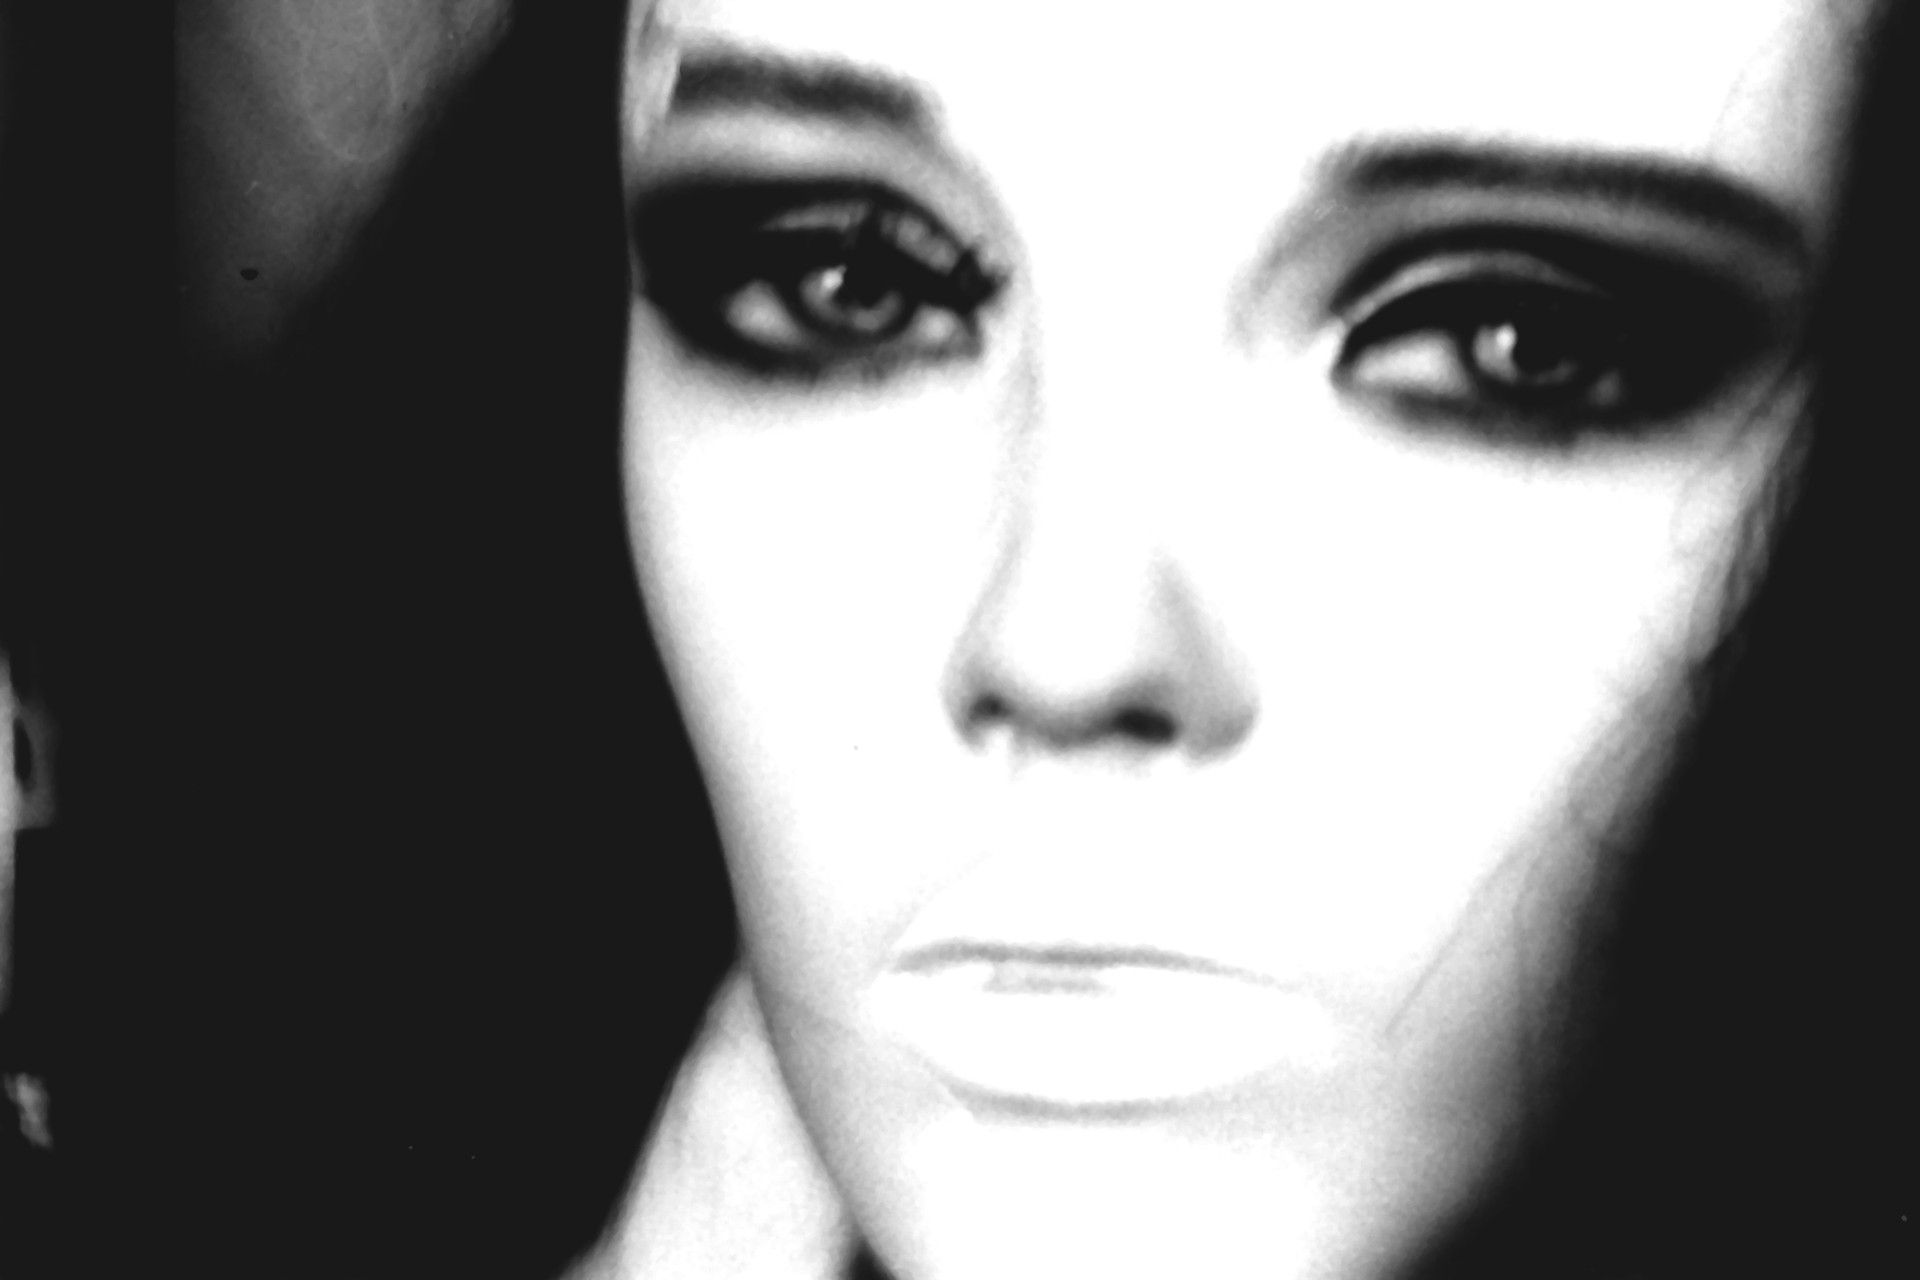 face blurry black and white